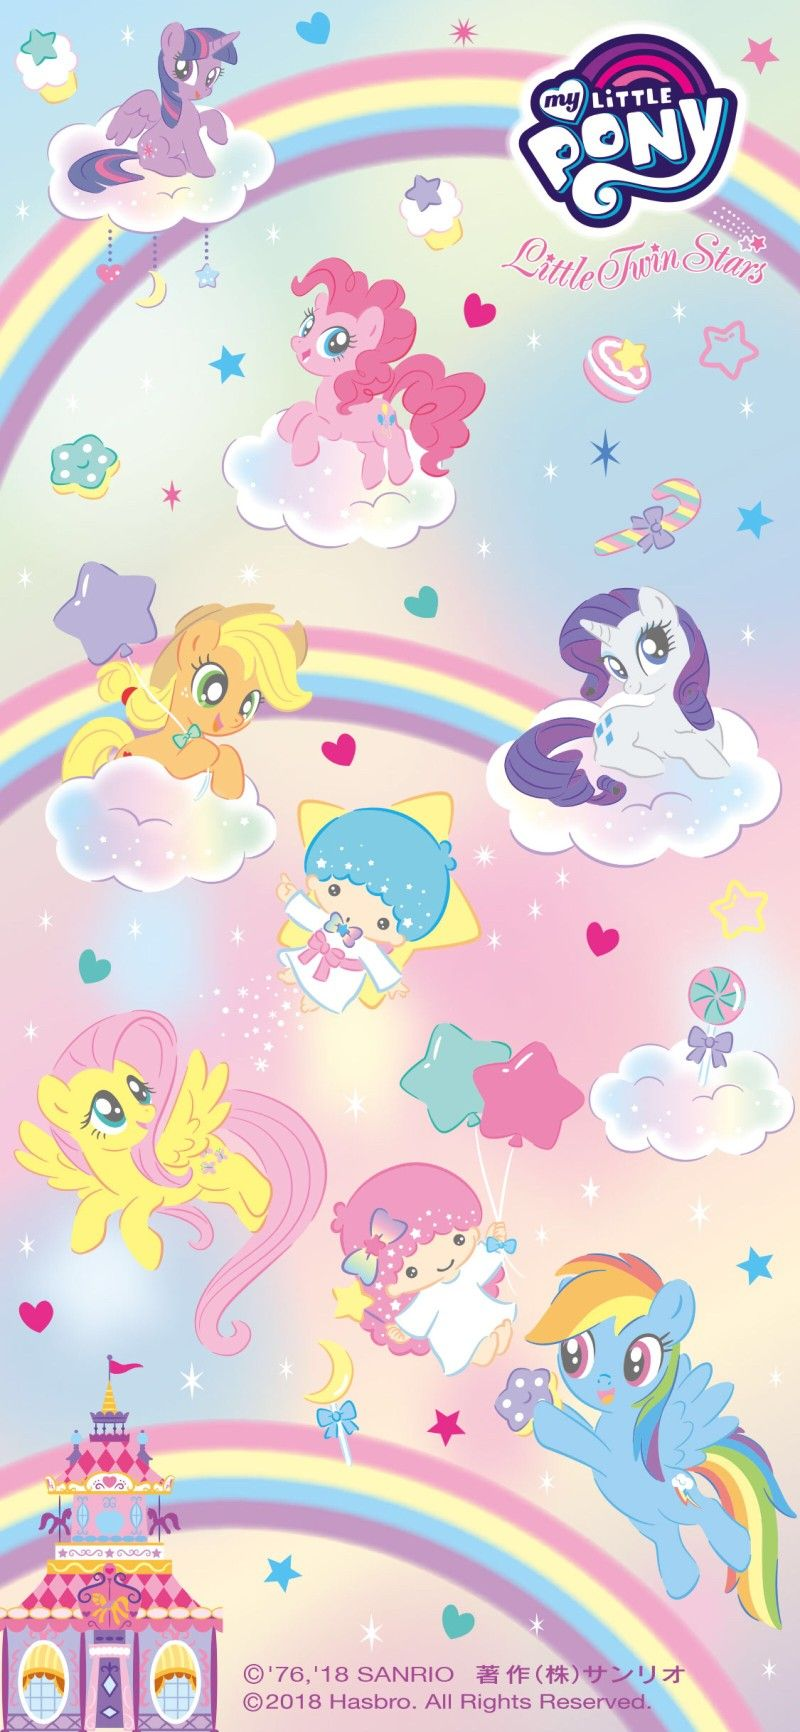 Pin By Sarah Jean Maurer On My Little Pony My Little Pony Wallpaper Unicorn Wallpaper Cute My Little Pony Collection